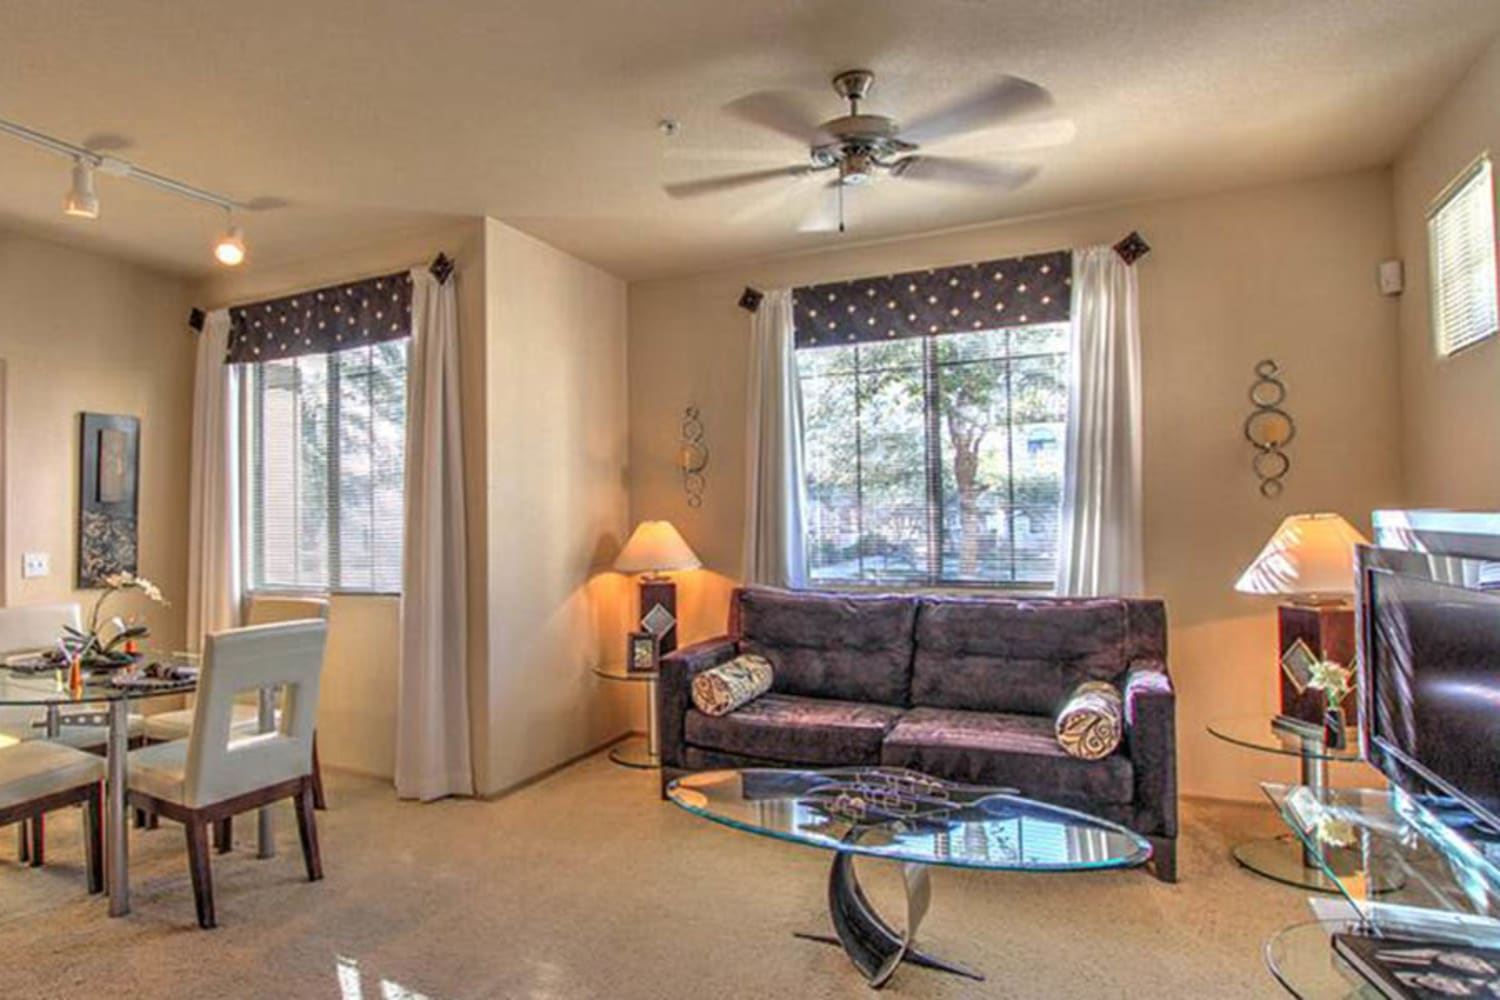 Dobson 2222 in Chandler, Arizona, offers open living room floor plans